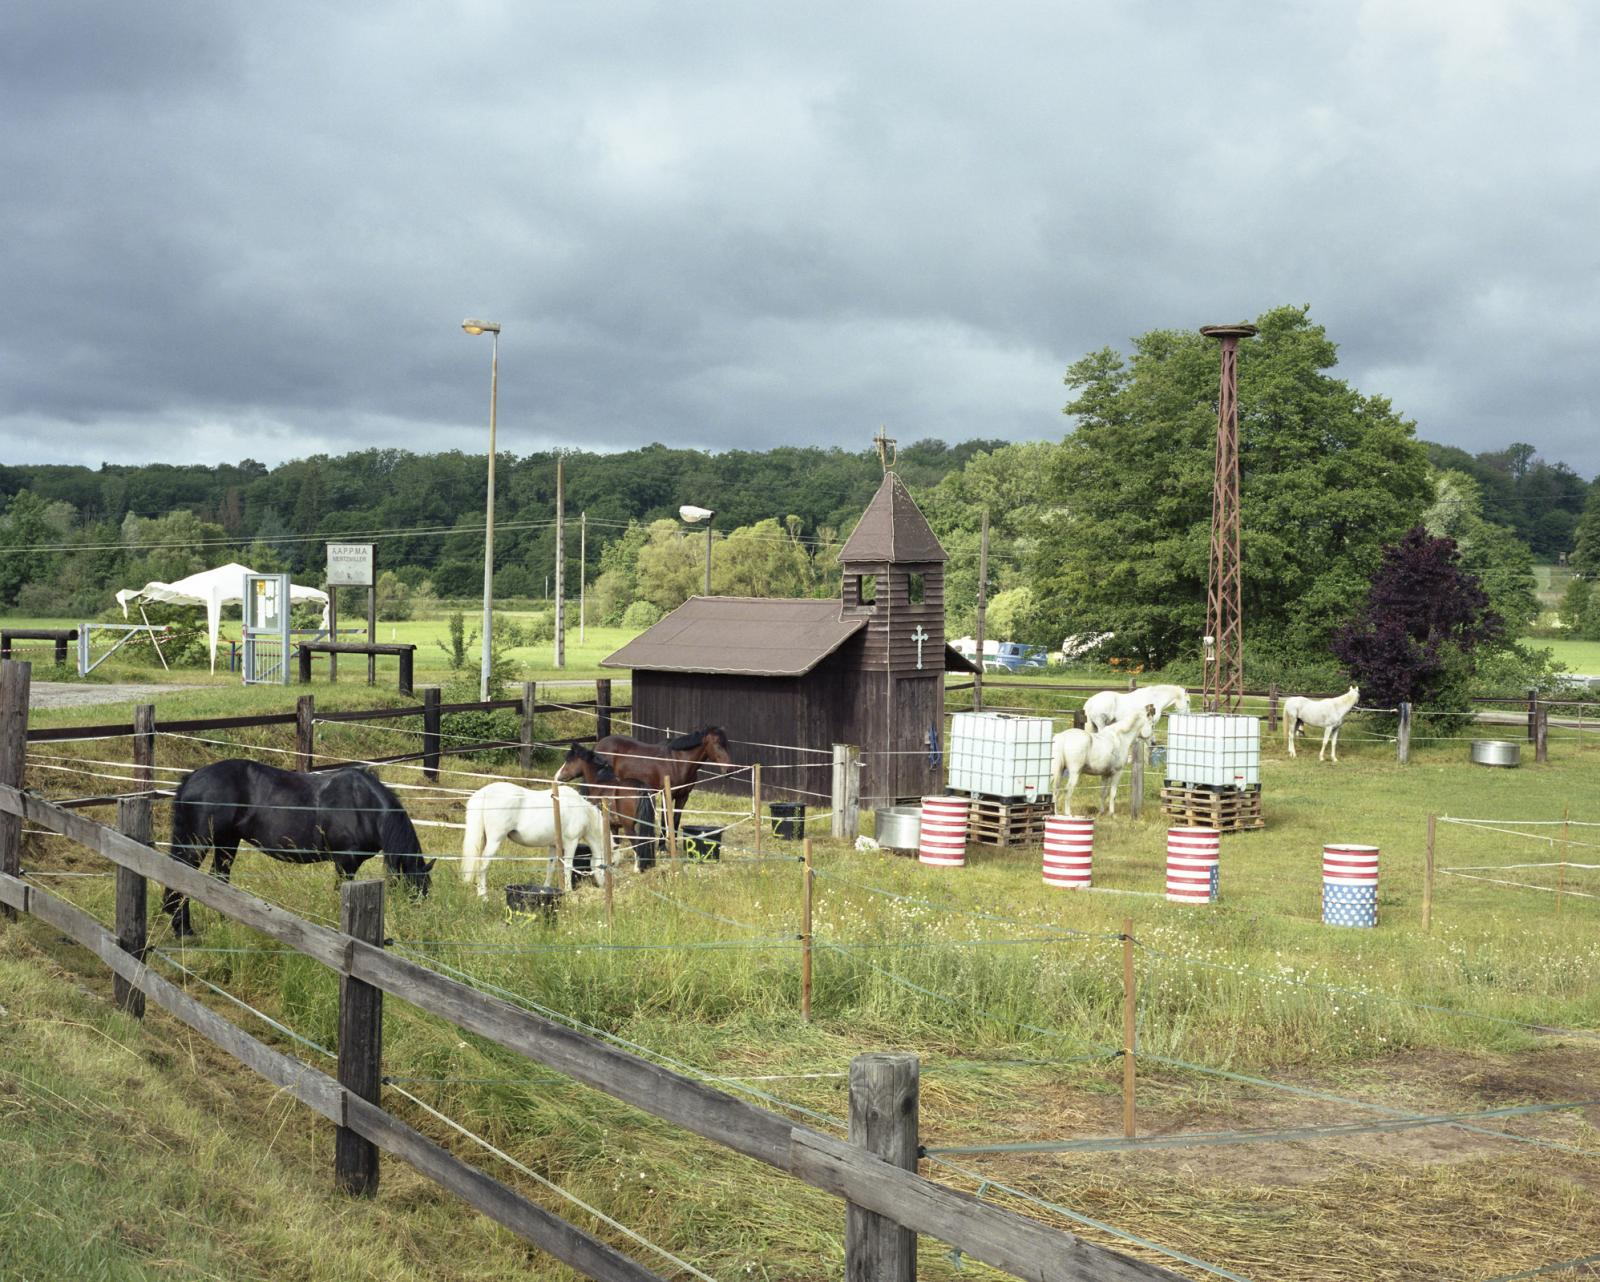 France, Kaffenach. A view of itinerant Rodeo Park inspired to the American Old Wild West.